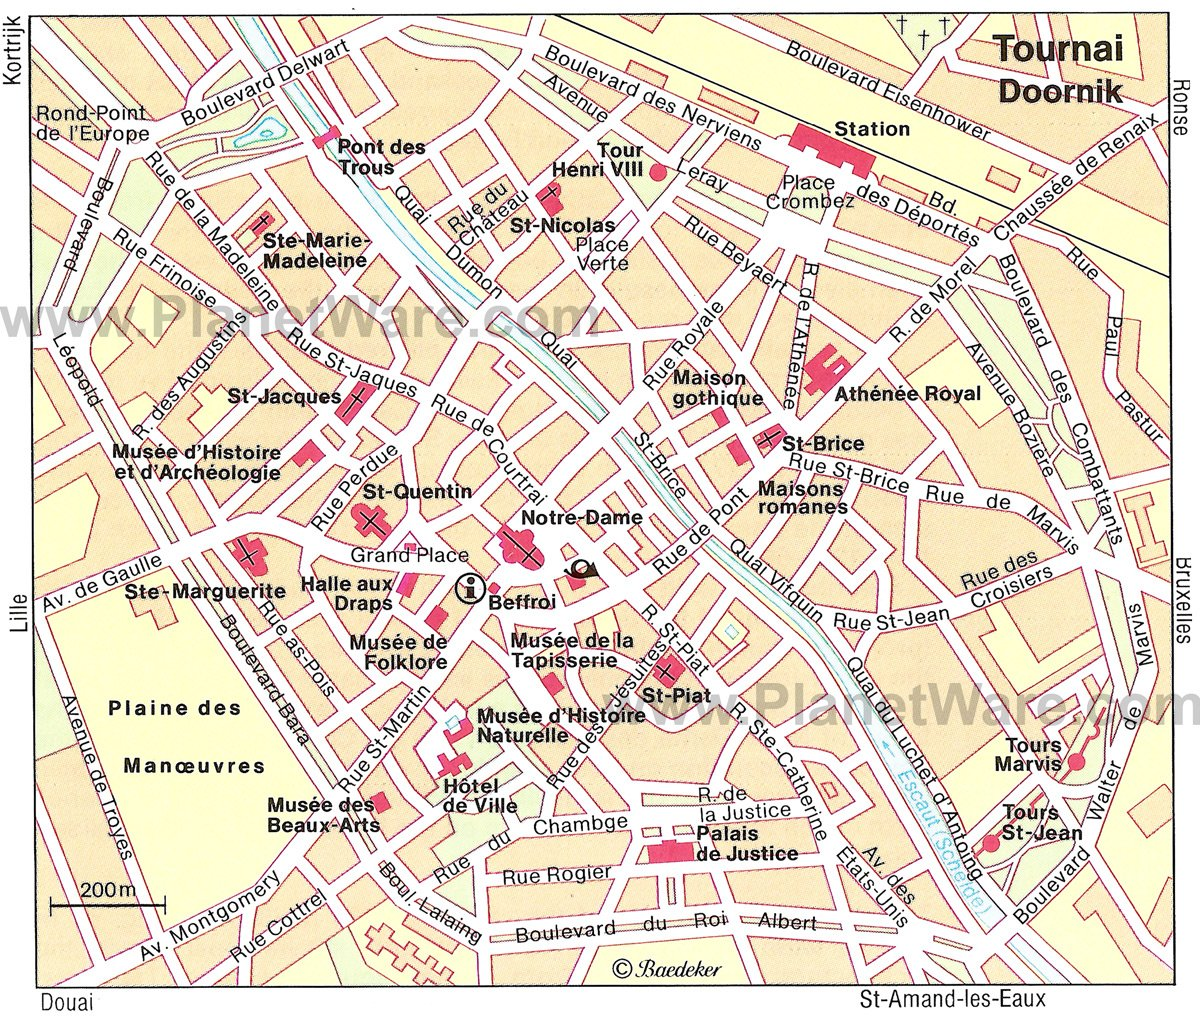 14 TopRated Tourist Attractions in Mons Bergen PlanetWare